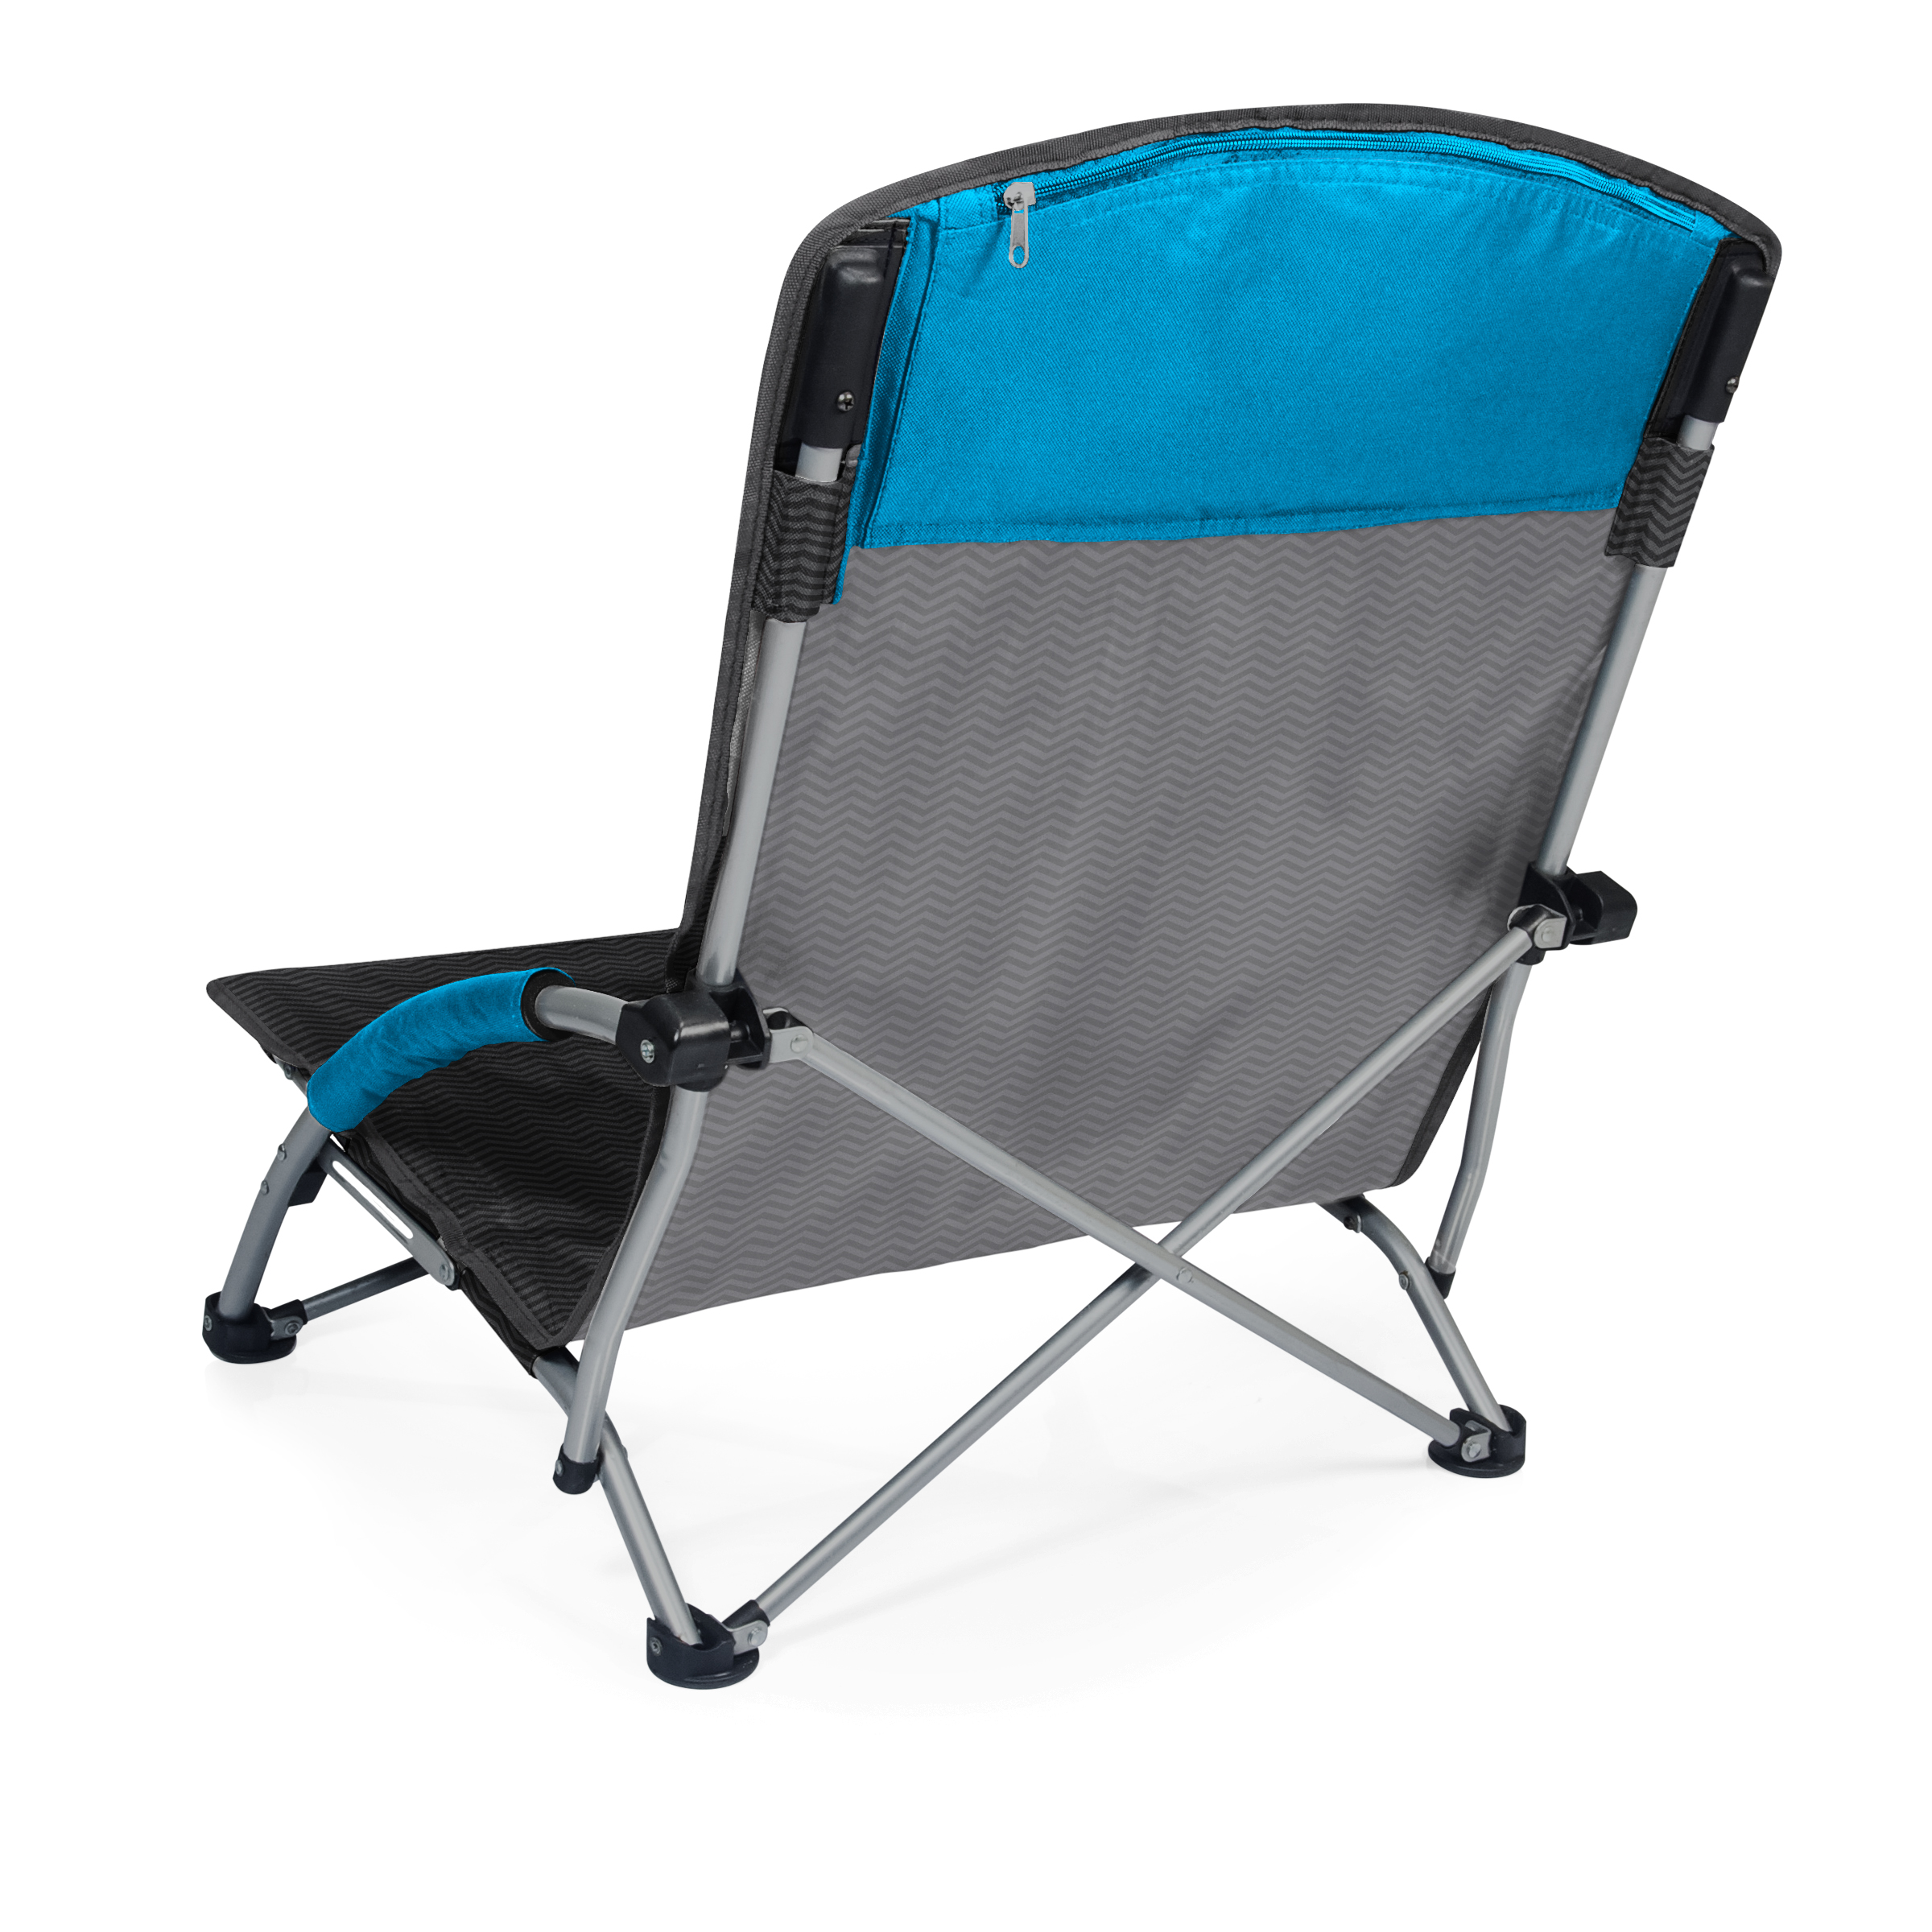 Picnic Chair Picnic Time Tranquility Chair Portable Beach Chair Waves